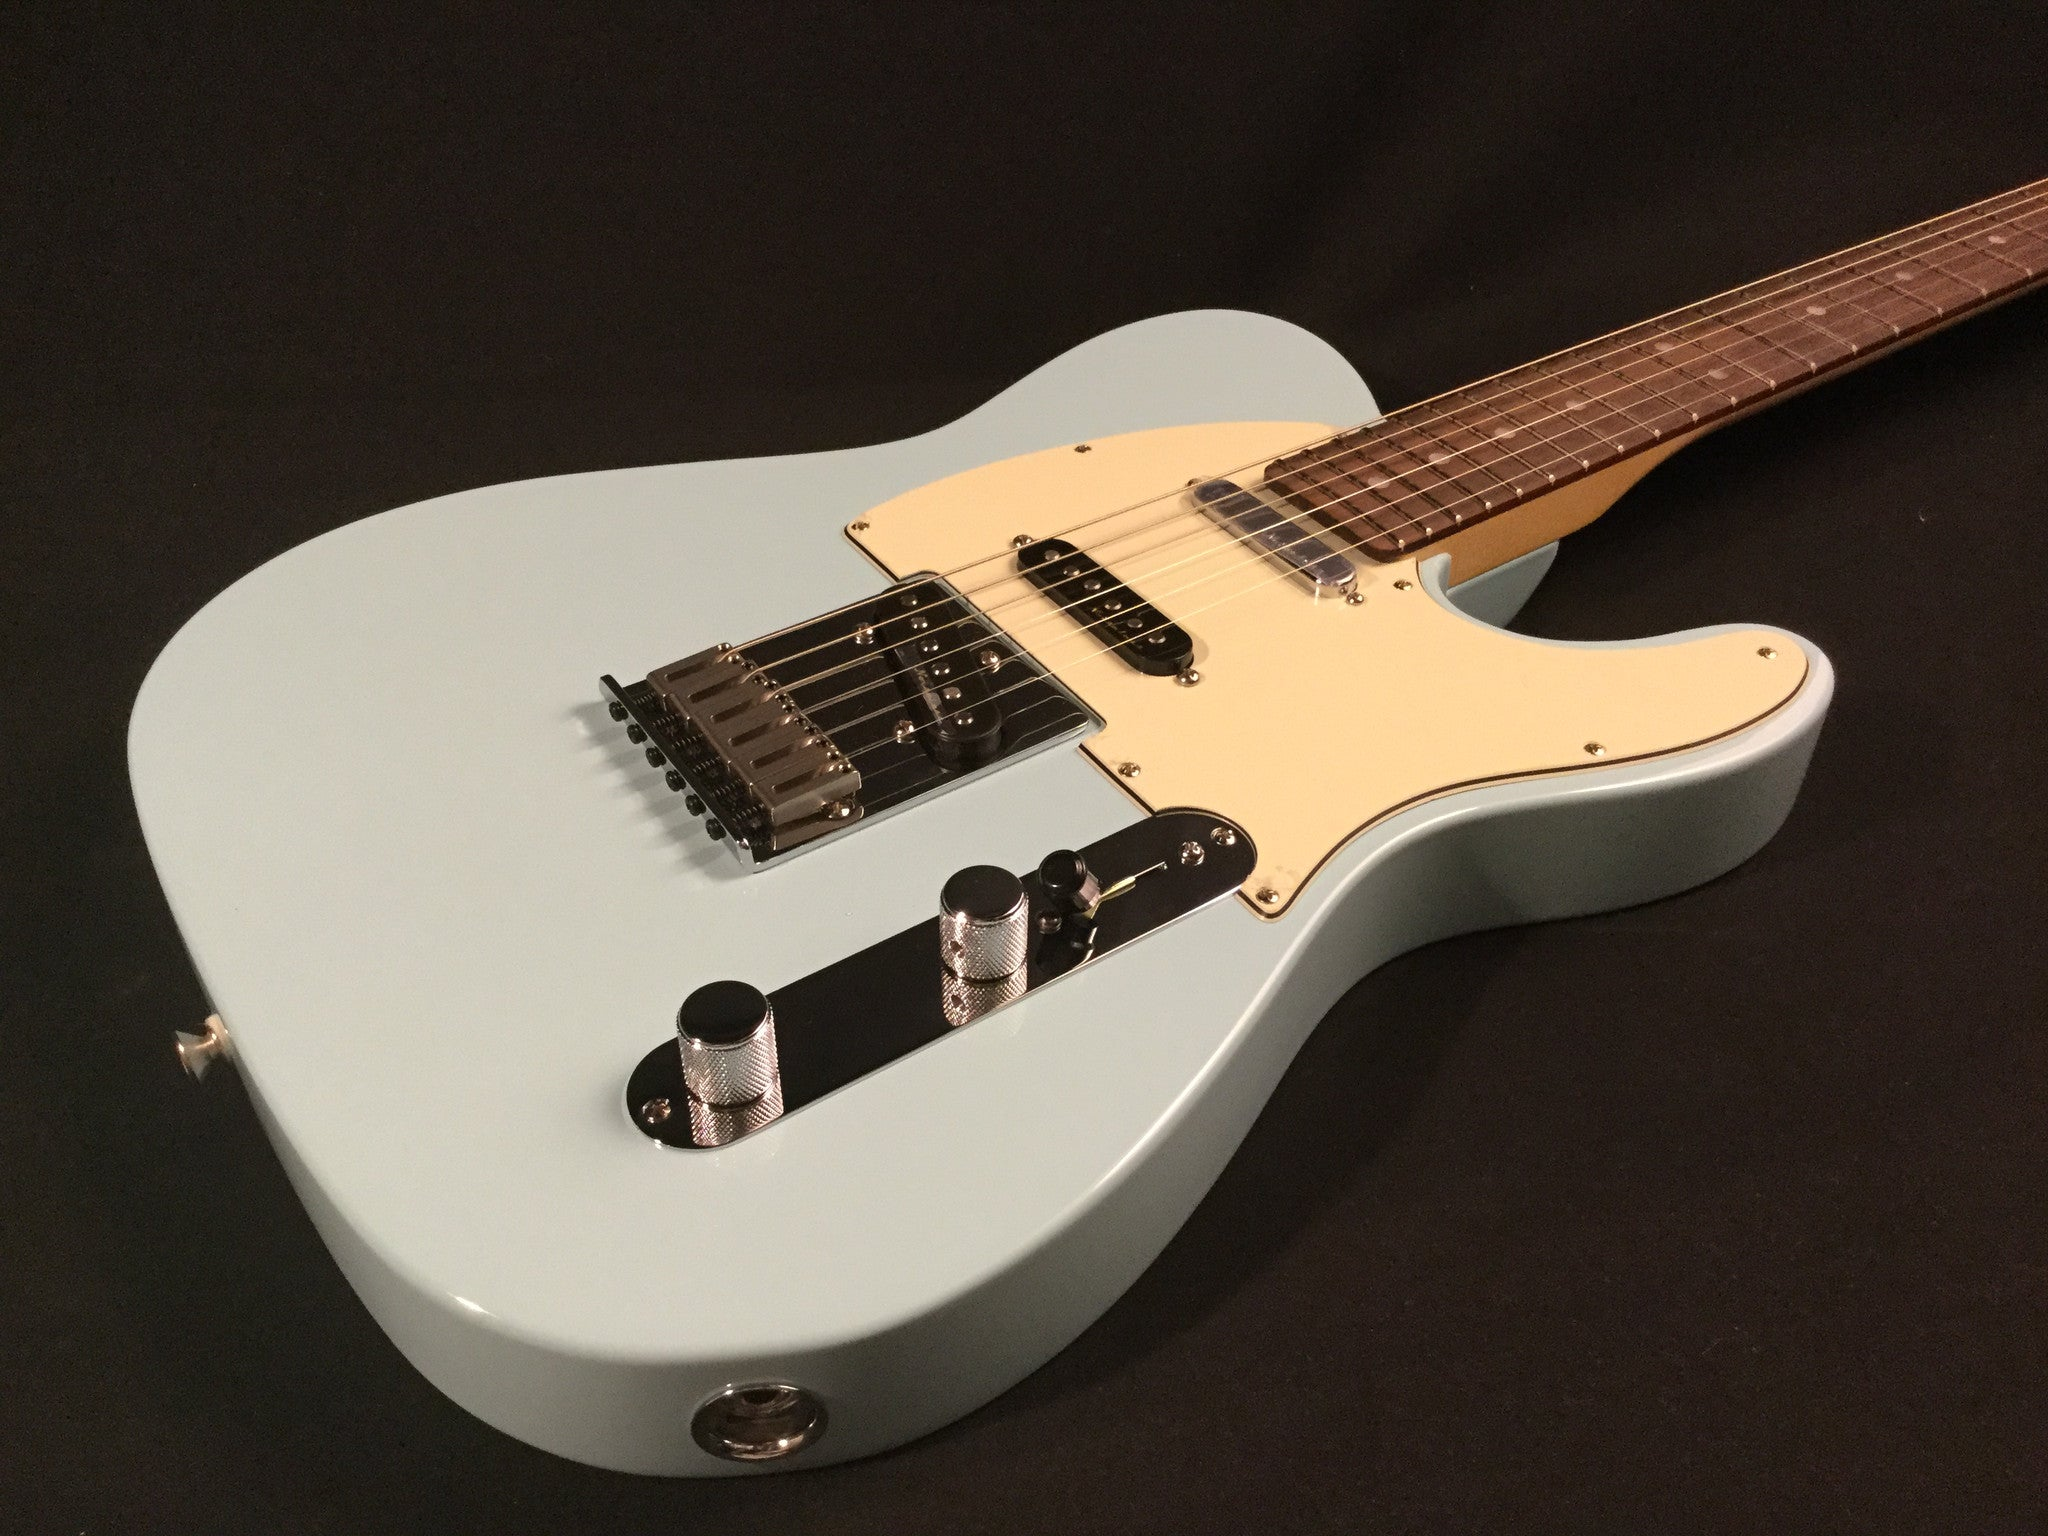 Fender deluxe nashville tele daphne blue with rosewood fender deluxe nashville tele daphne blue with rosewood fingerboard publicscrutiny Image collections